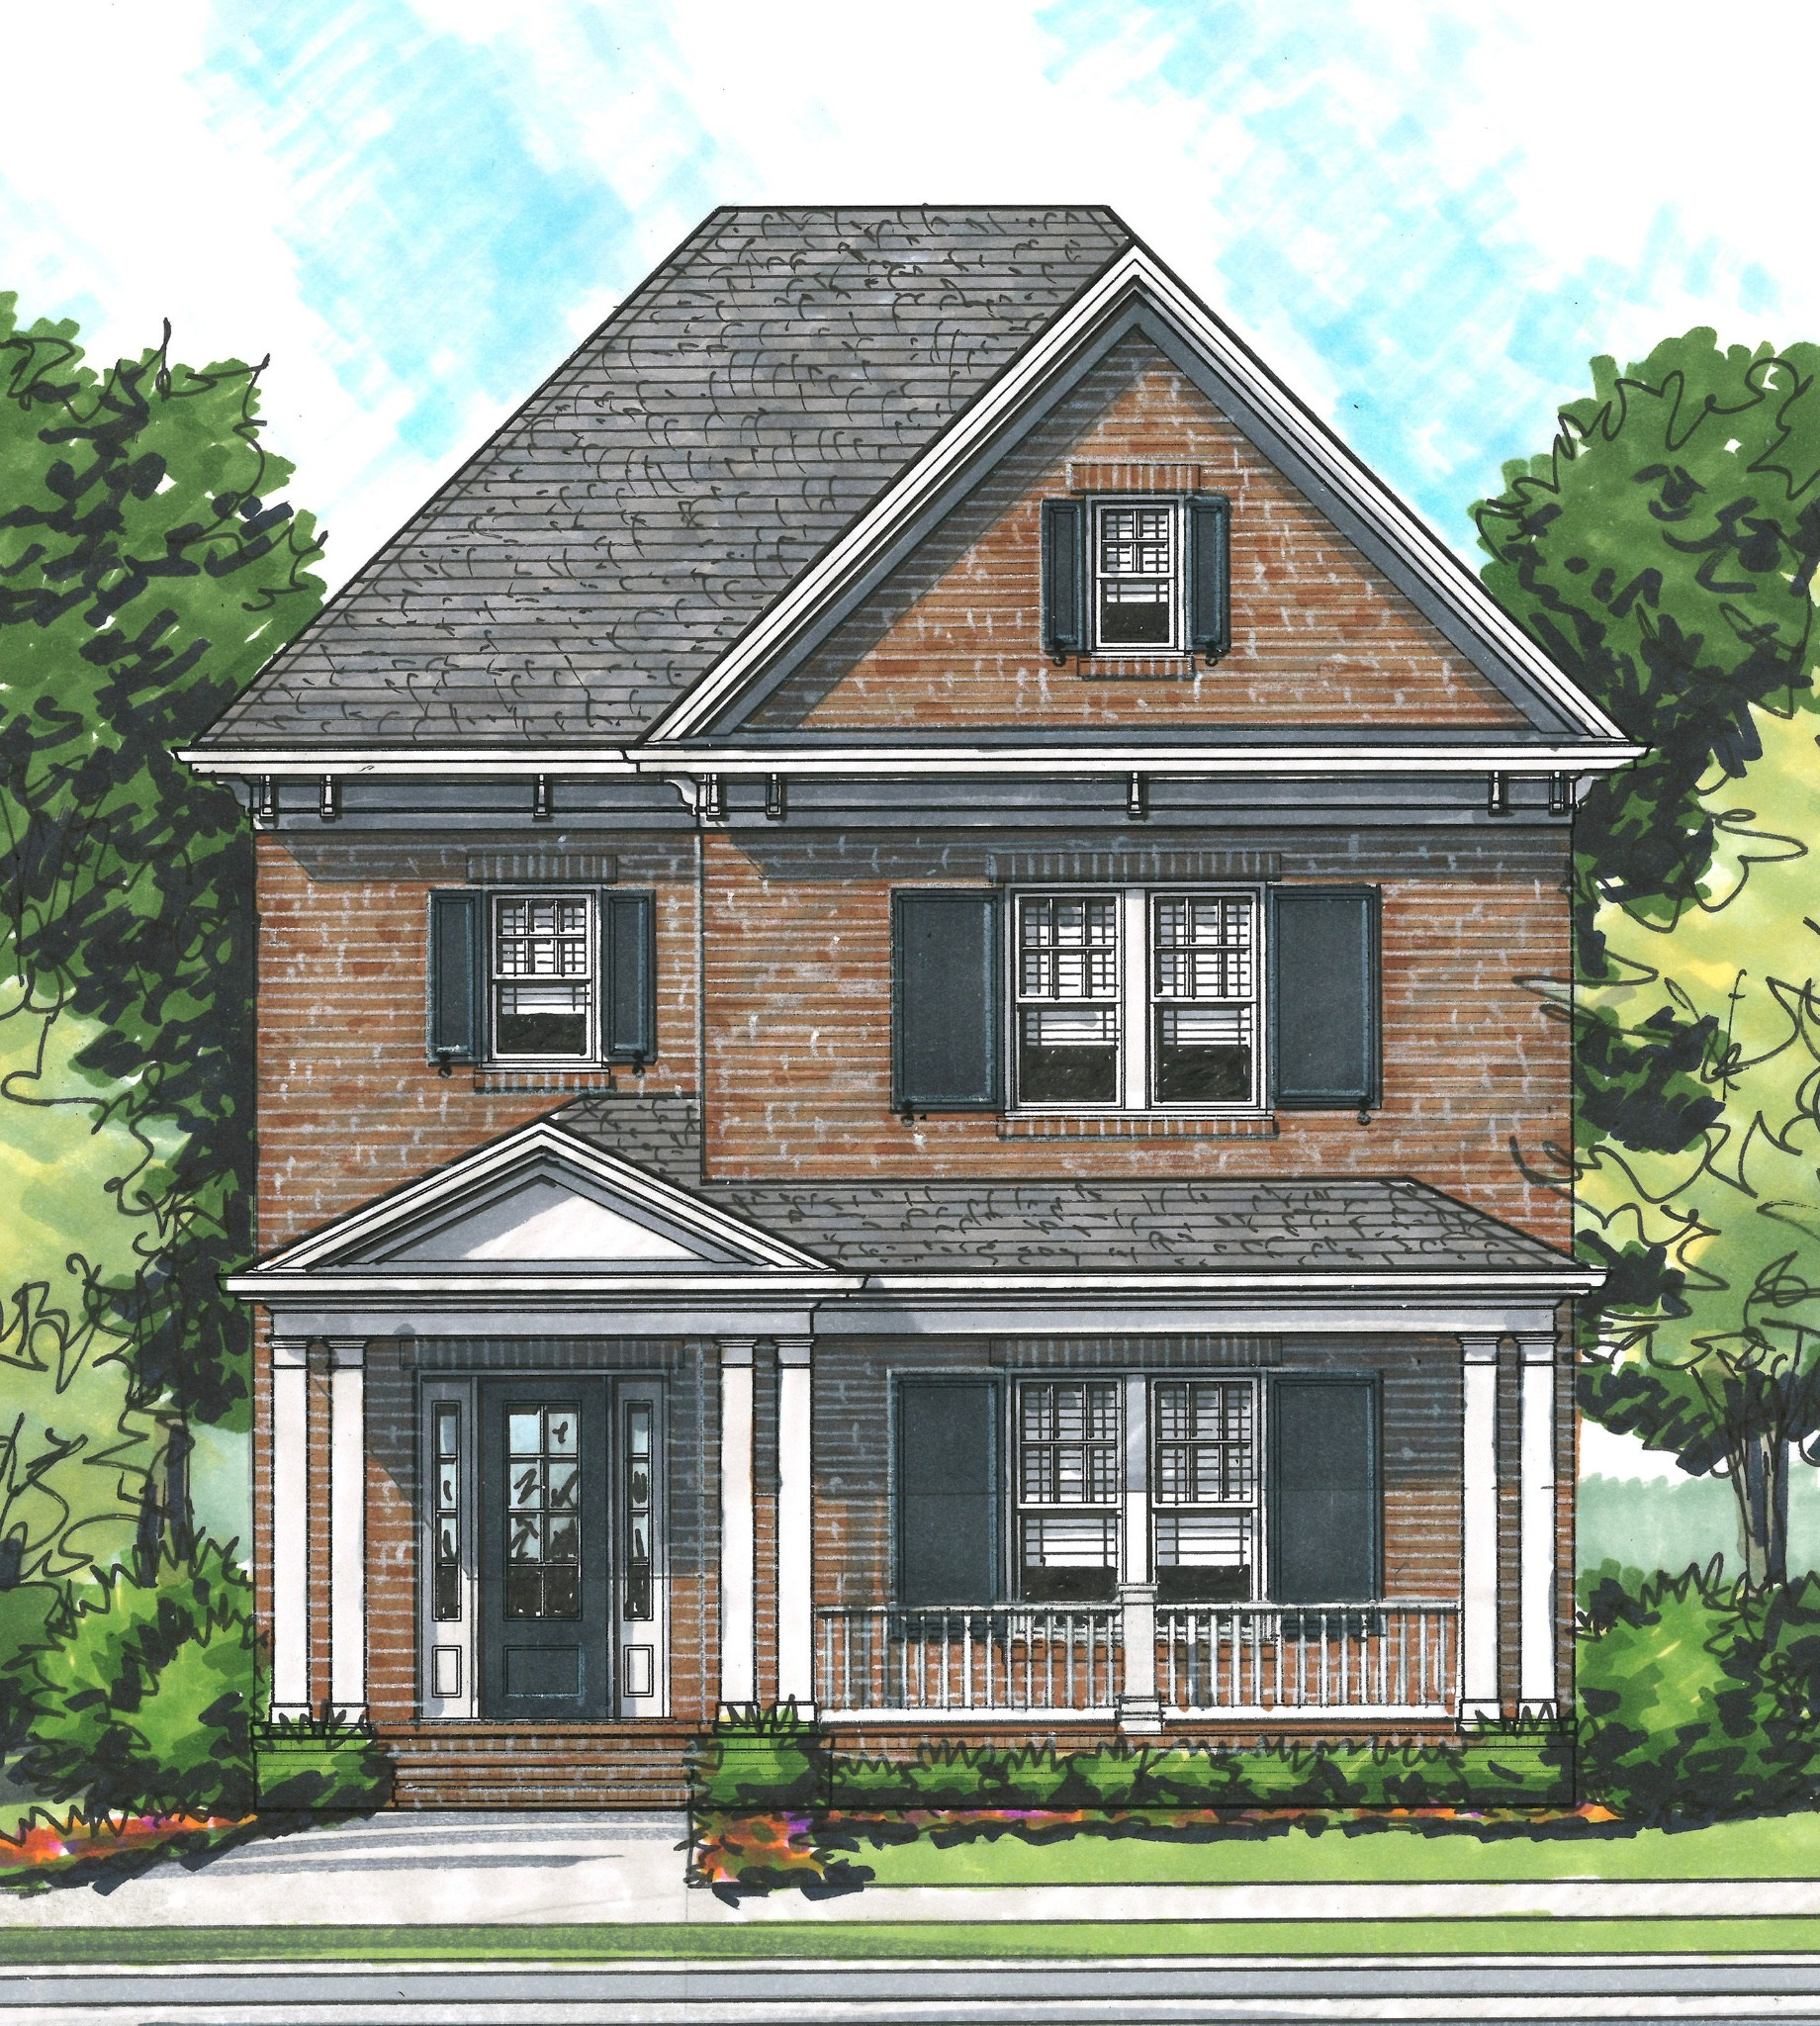 "Stately brick ""Abigail"" in newest section near golf course and facing a park!   Large front porch, back porch w/fireplace.  Five bedrooms, 4 baths, KitchenAid appliances including commercial range, lots of hardwoods, 10 & 11-ft ceilings on the main, 9 ft ceilings up, decked out with lots of upgrades!"